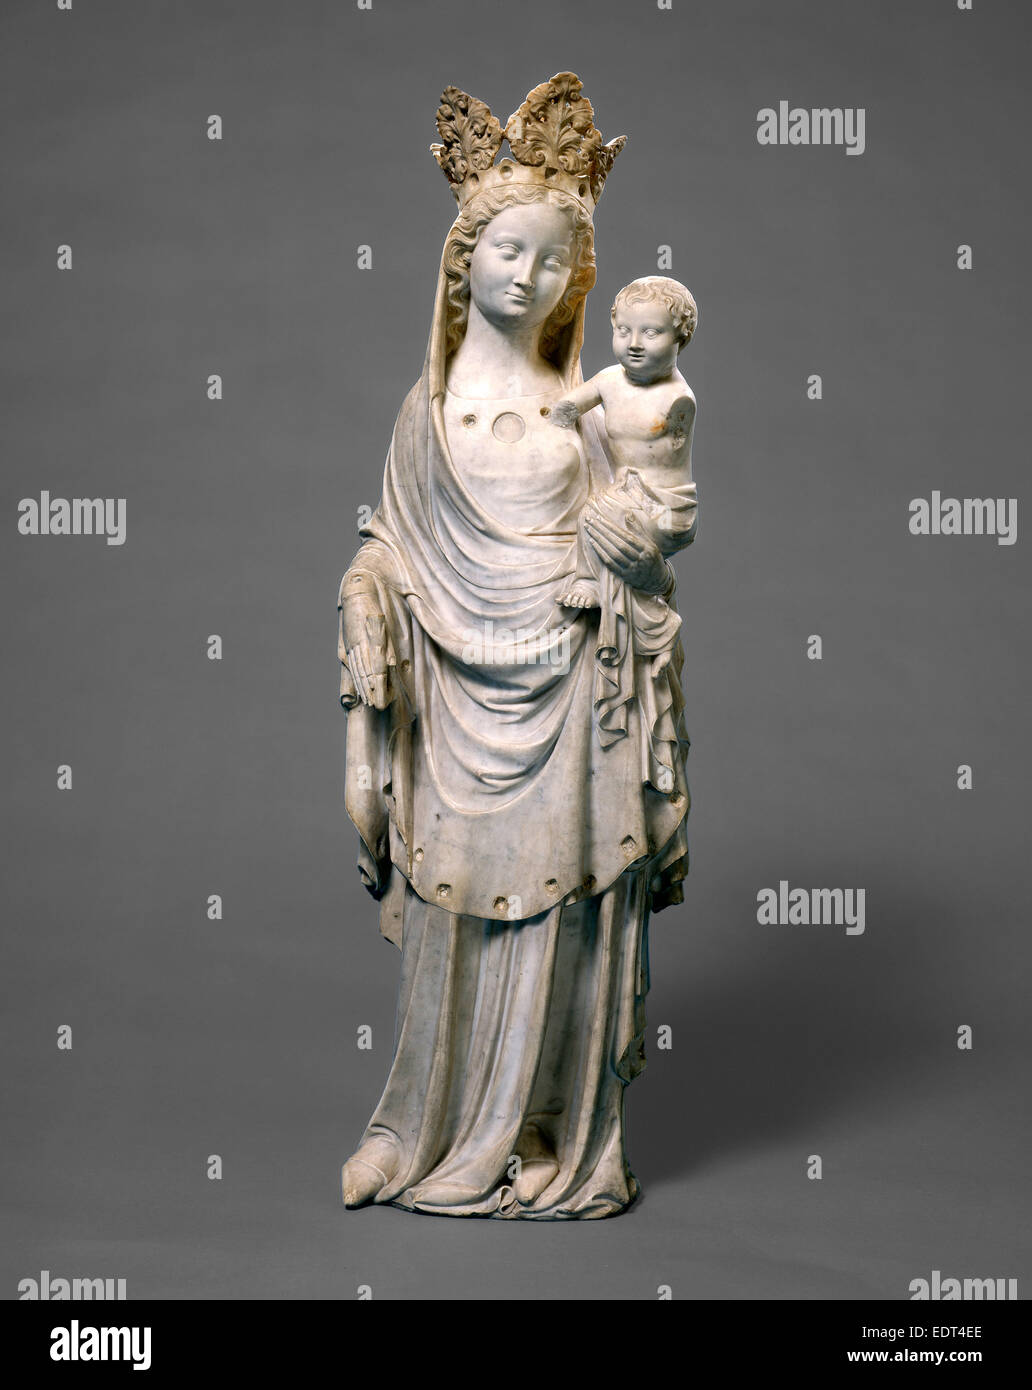 French 14th Century, Virgin and Child, c. 1325-1350, marble - Stock Image